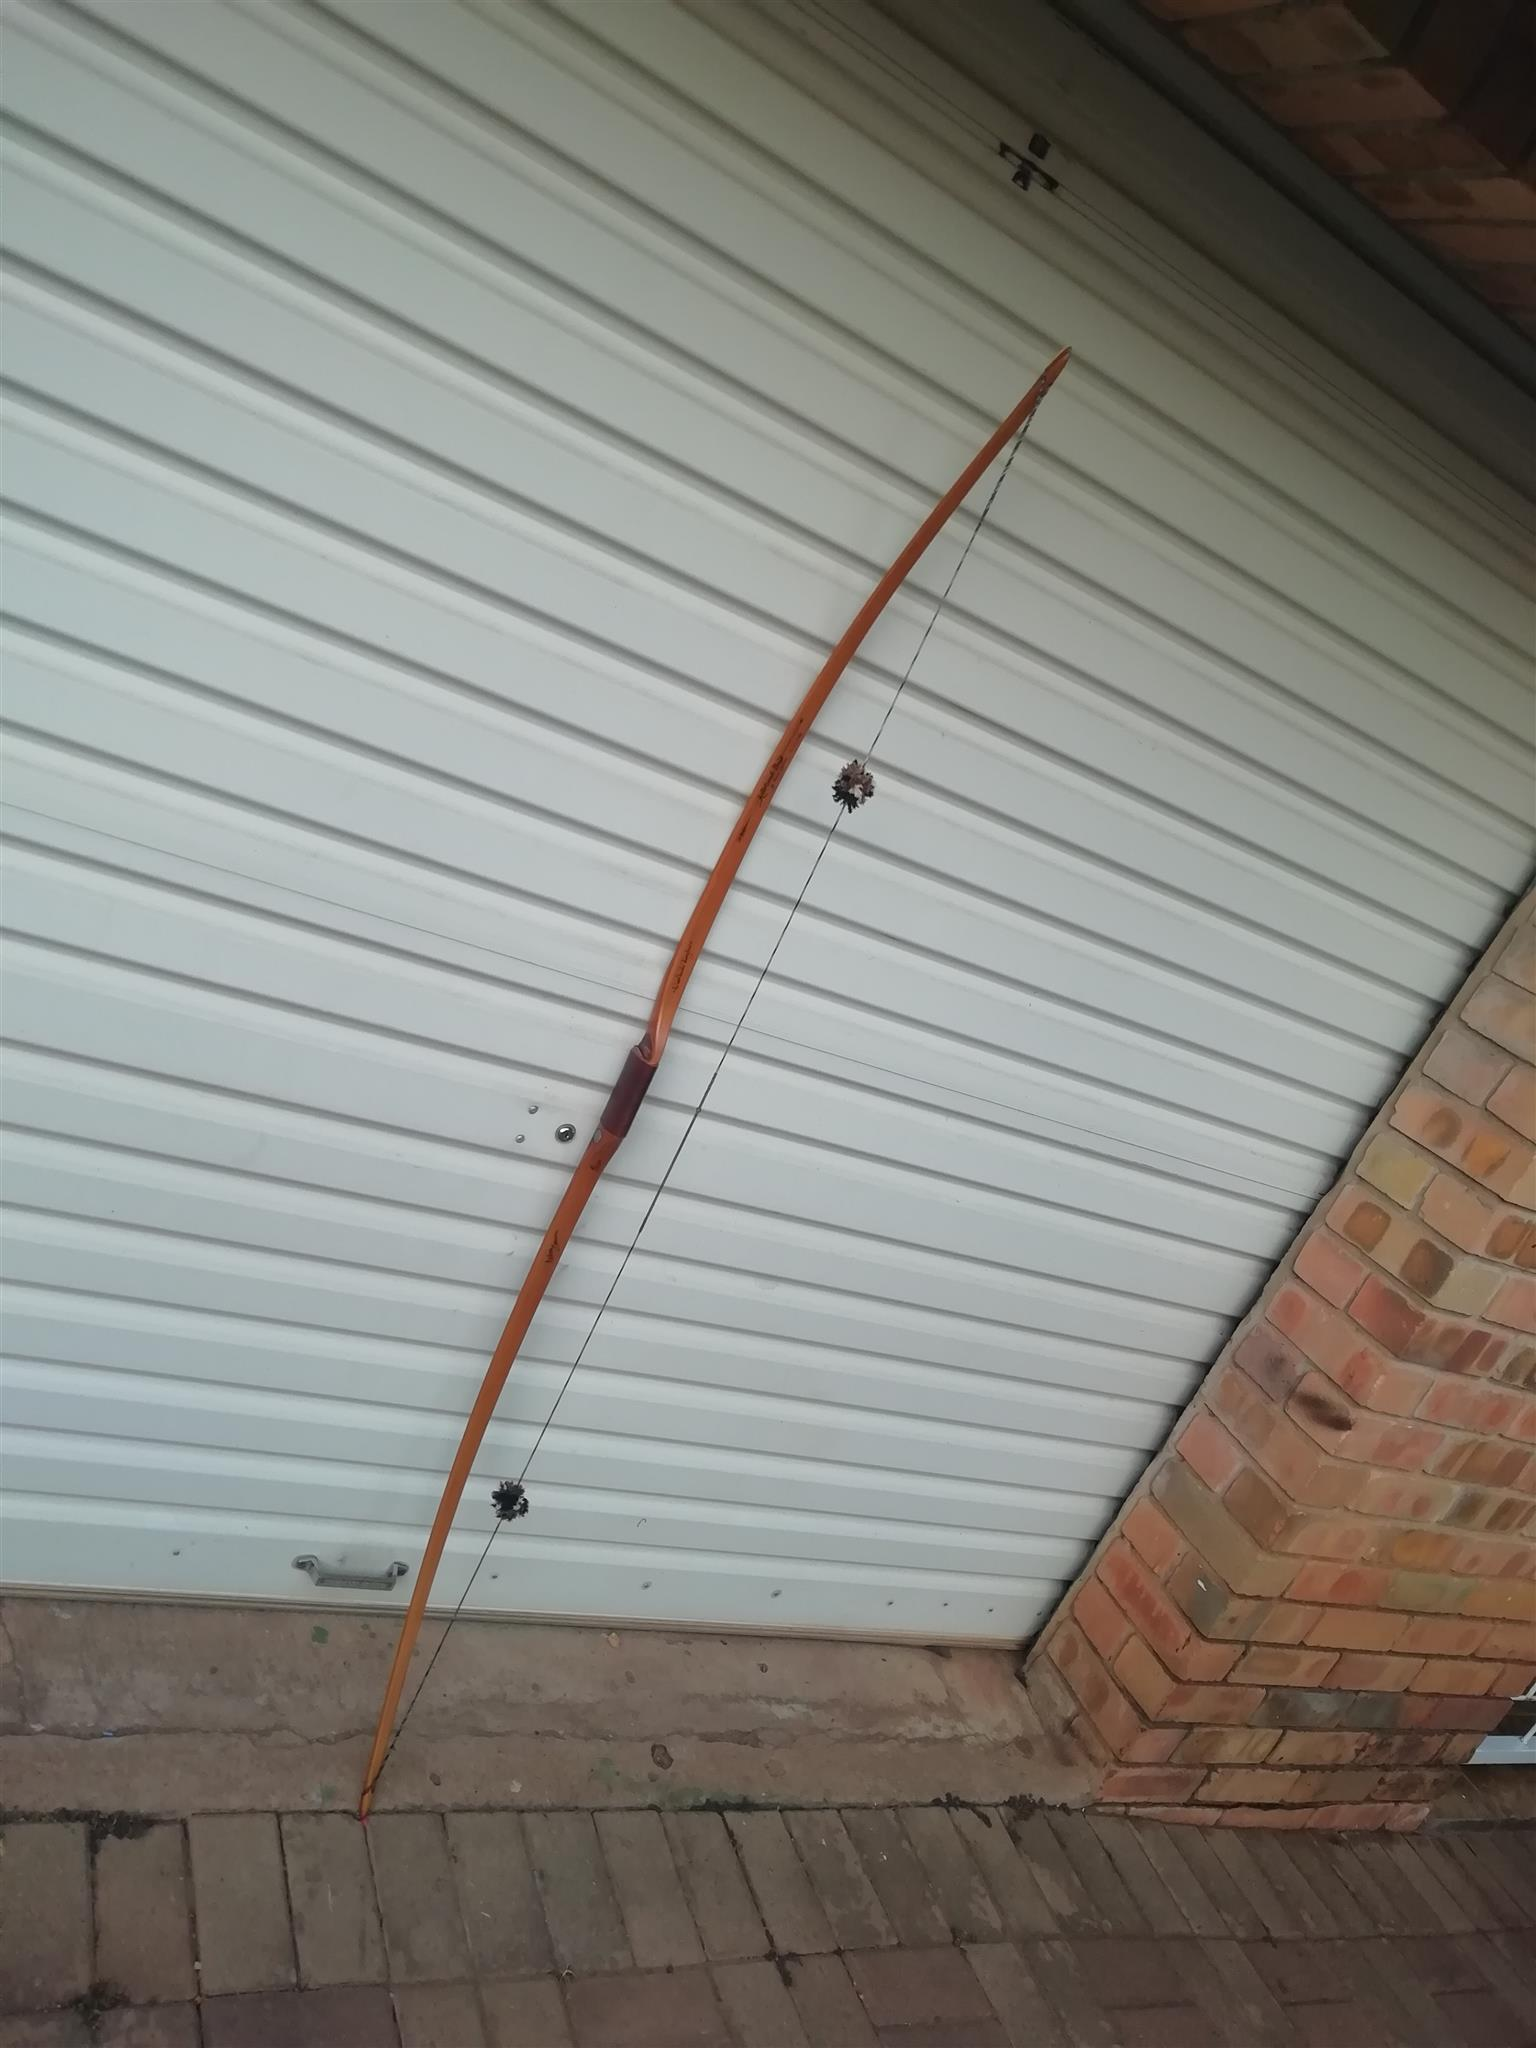 Long bow and arrows